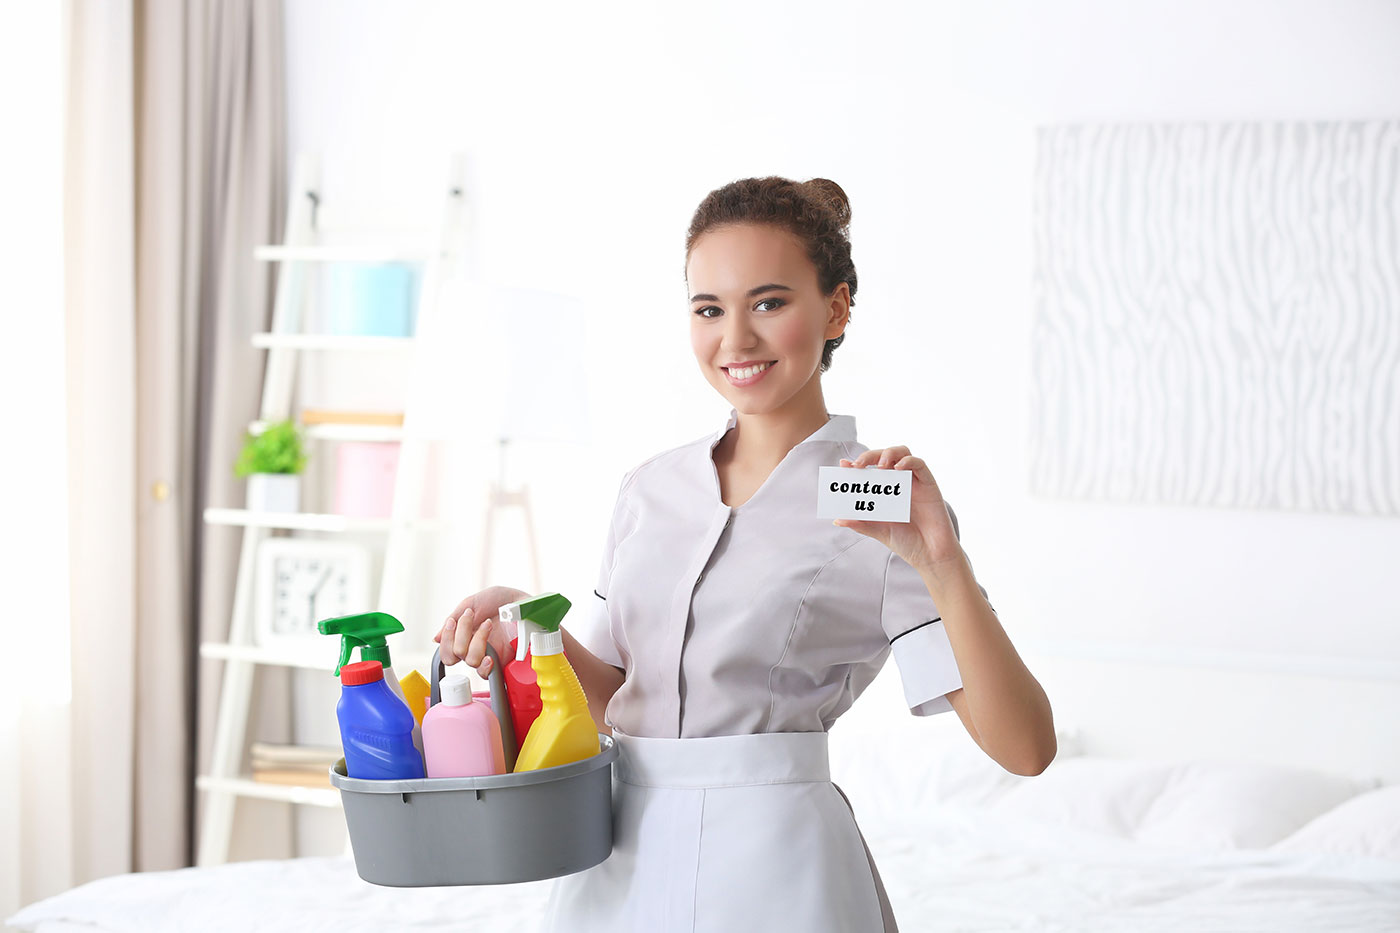 End of Tenancy Cleaning and Hiring a Professional Cleaning Company